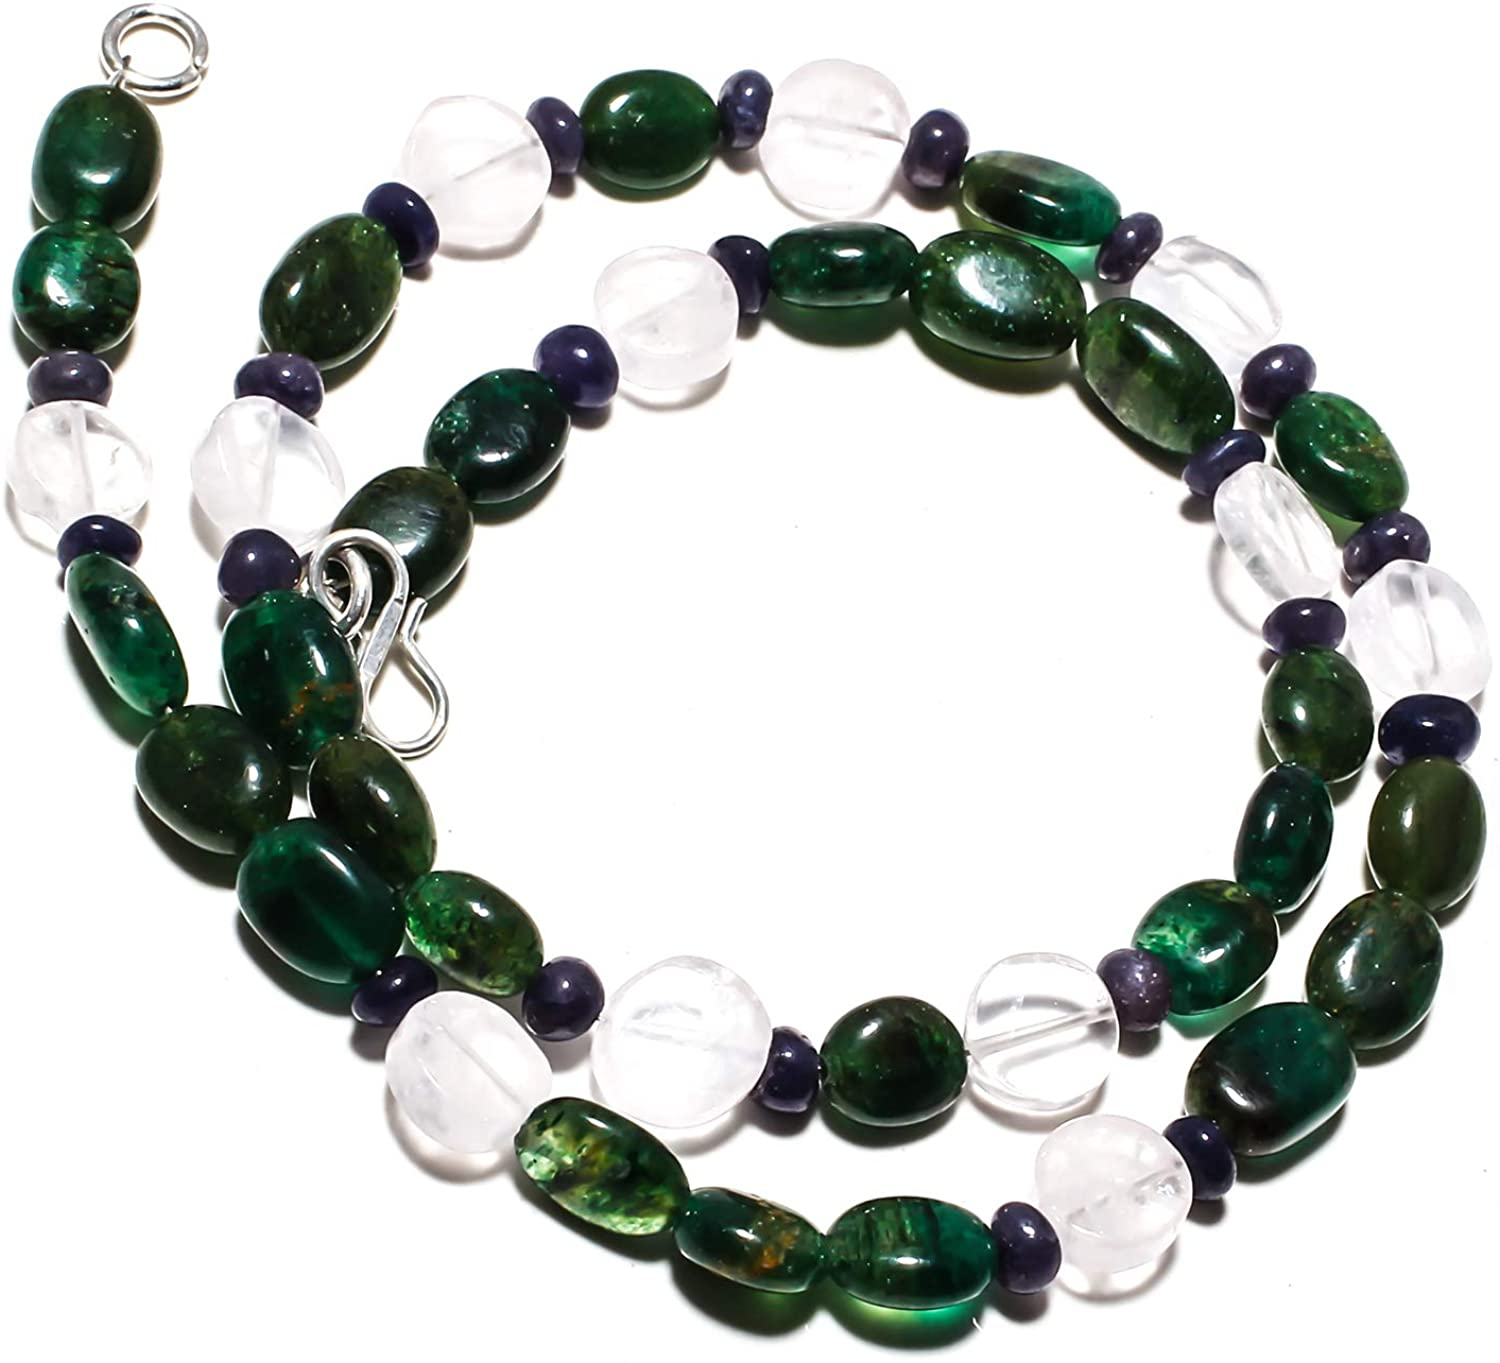 kanta incorporation Moss Agate Natural Gemstone Beads Jewelry Necklace 17